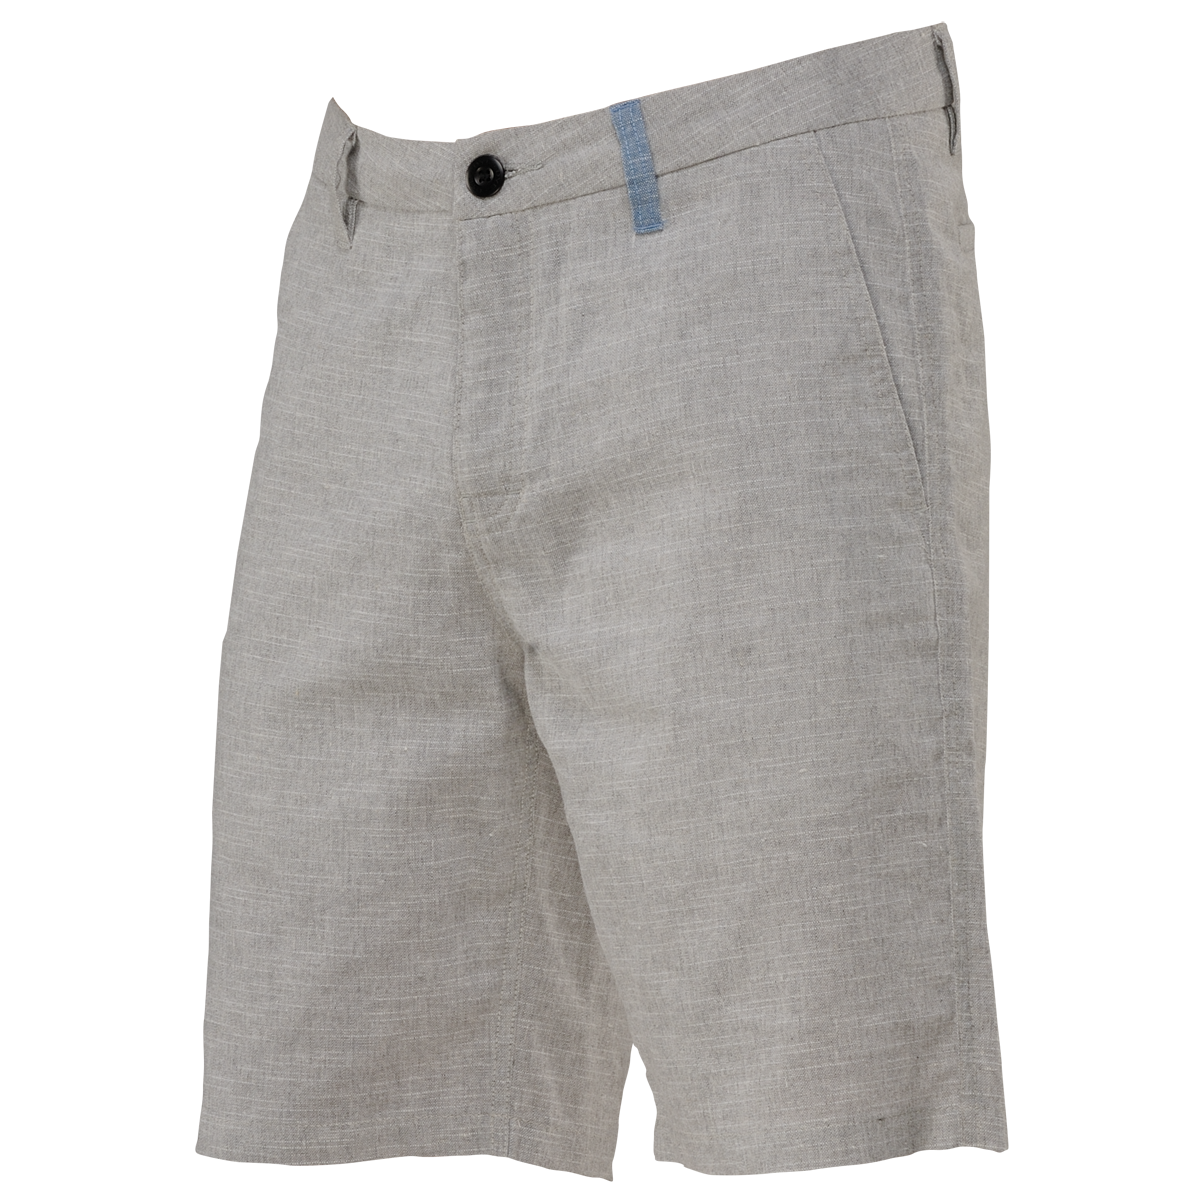 Dye Trader Shorts   Light Gray   Blue